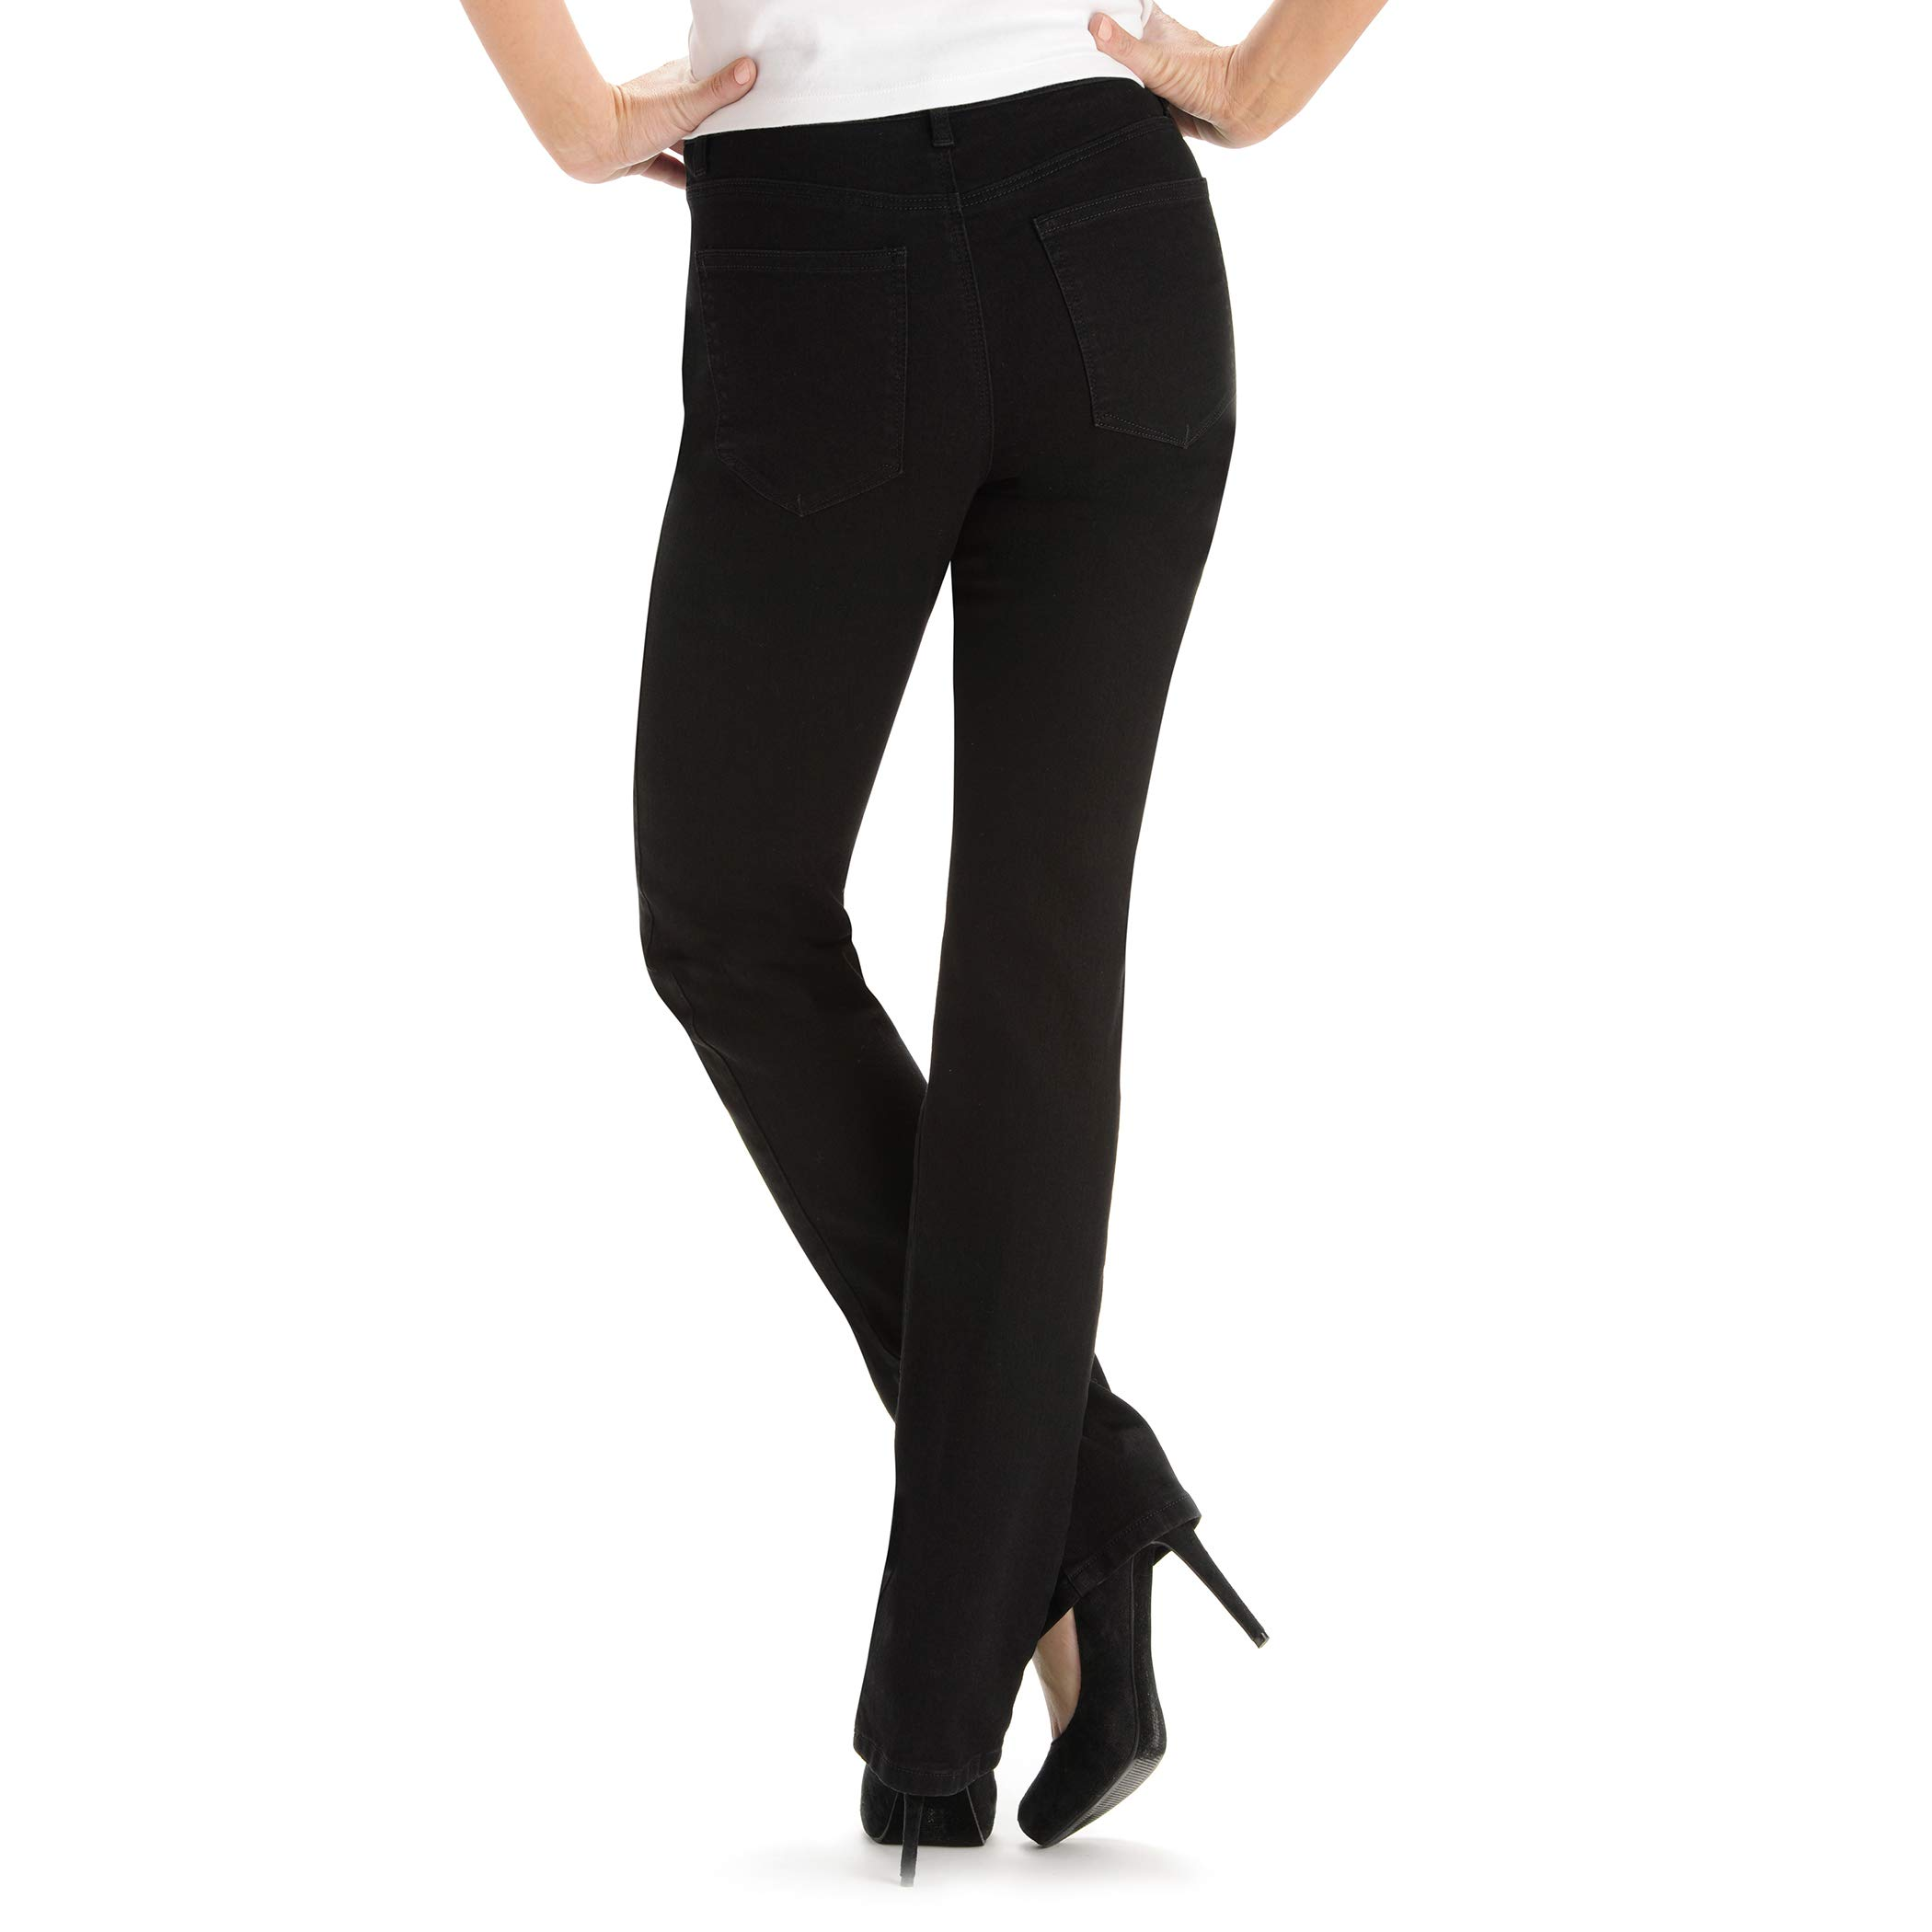 e89fb8655b0f5 LEE Women s Tall Instantly Slims Classic Relaxed Fit Monroe Straight Leg  Jean